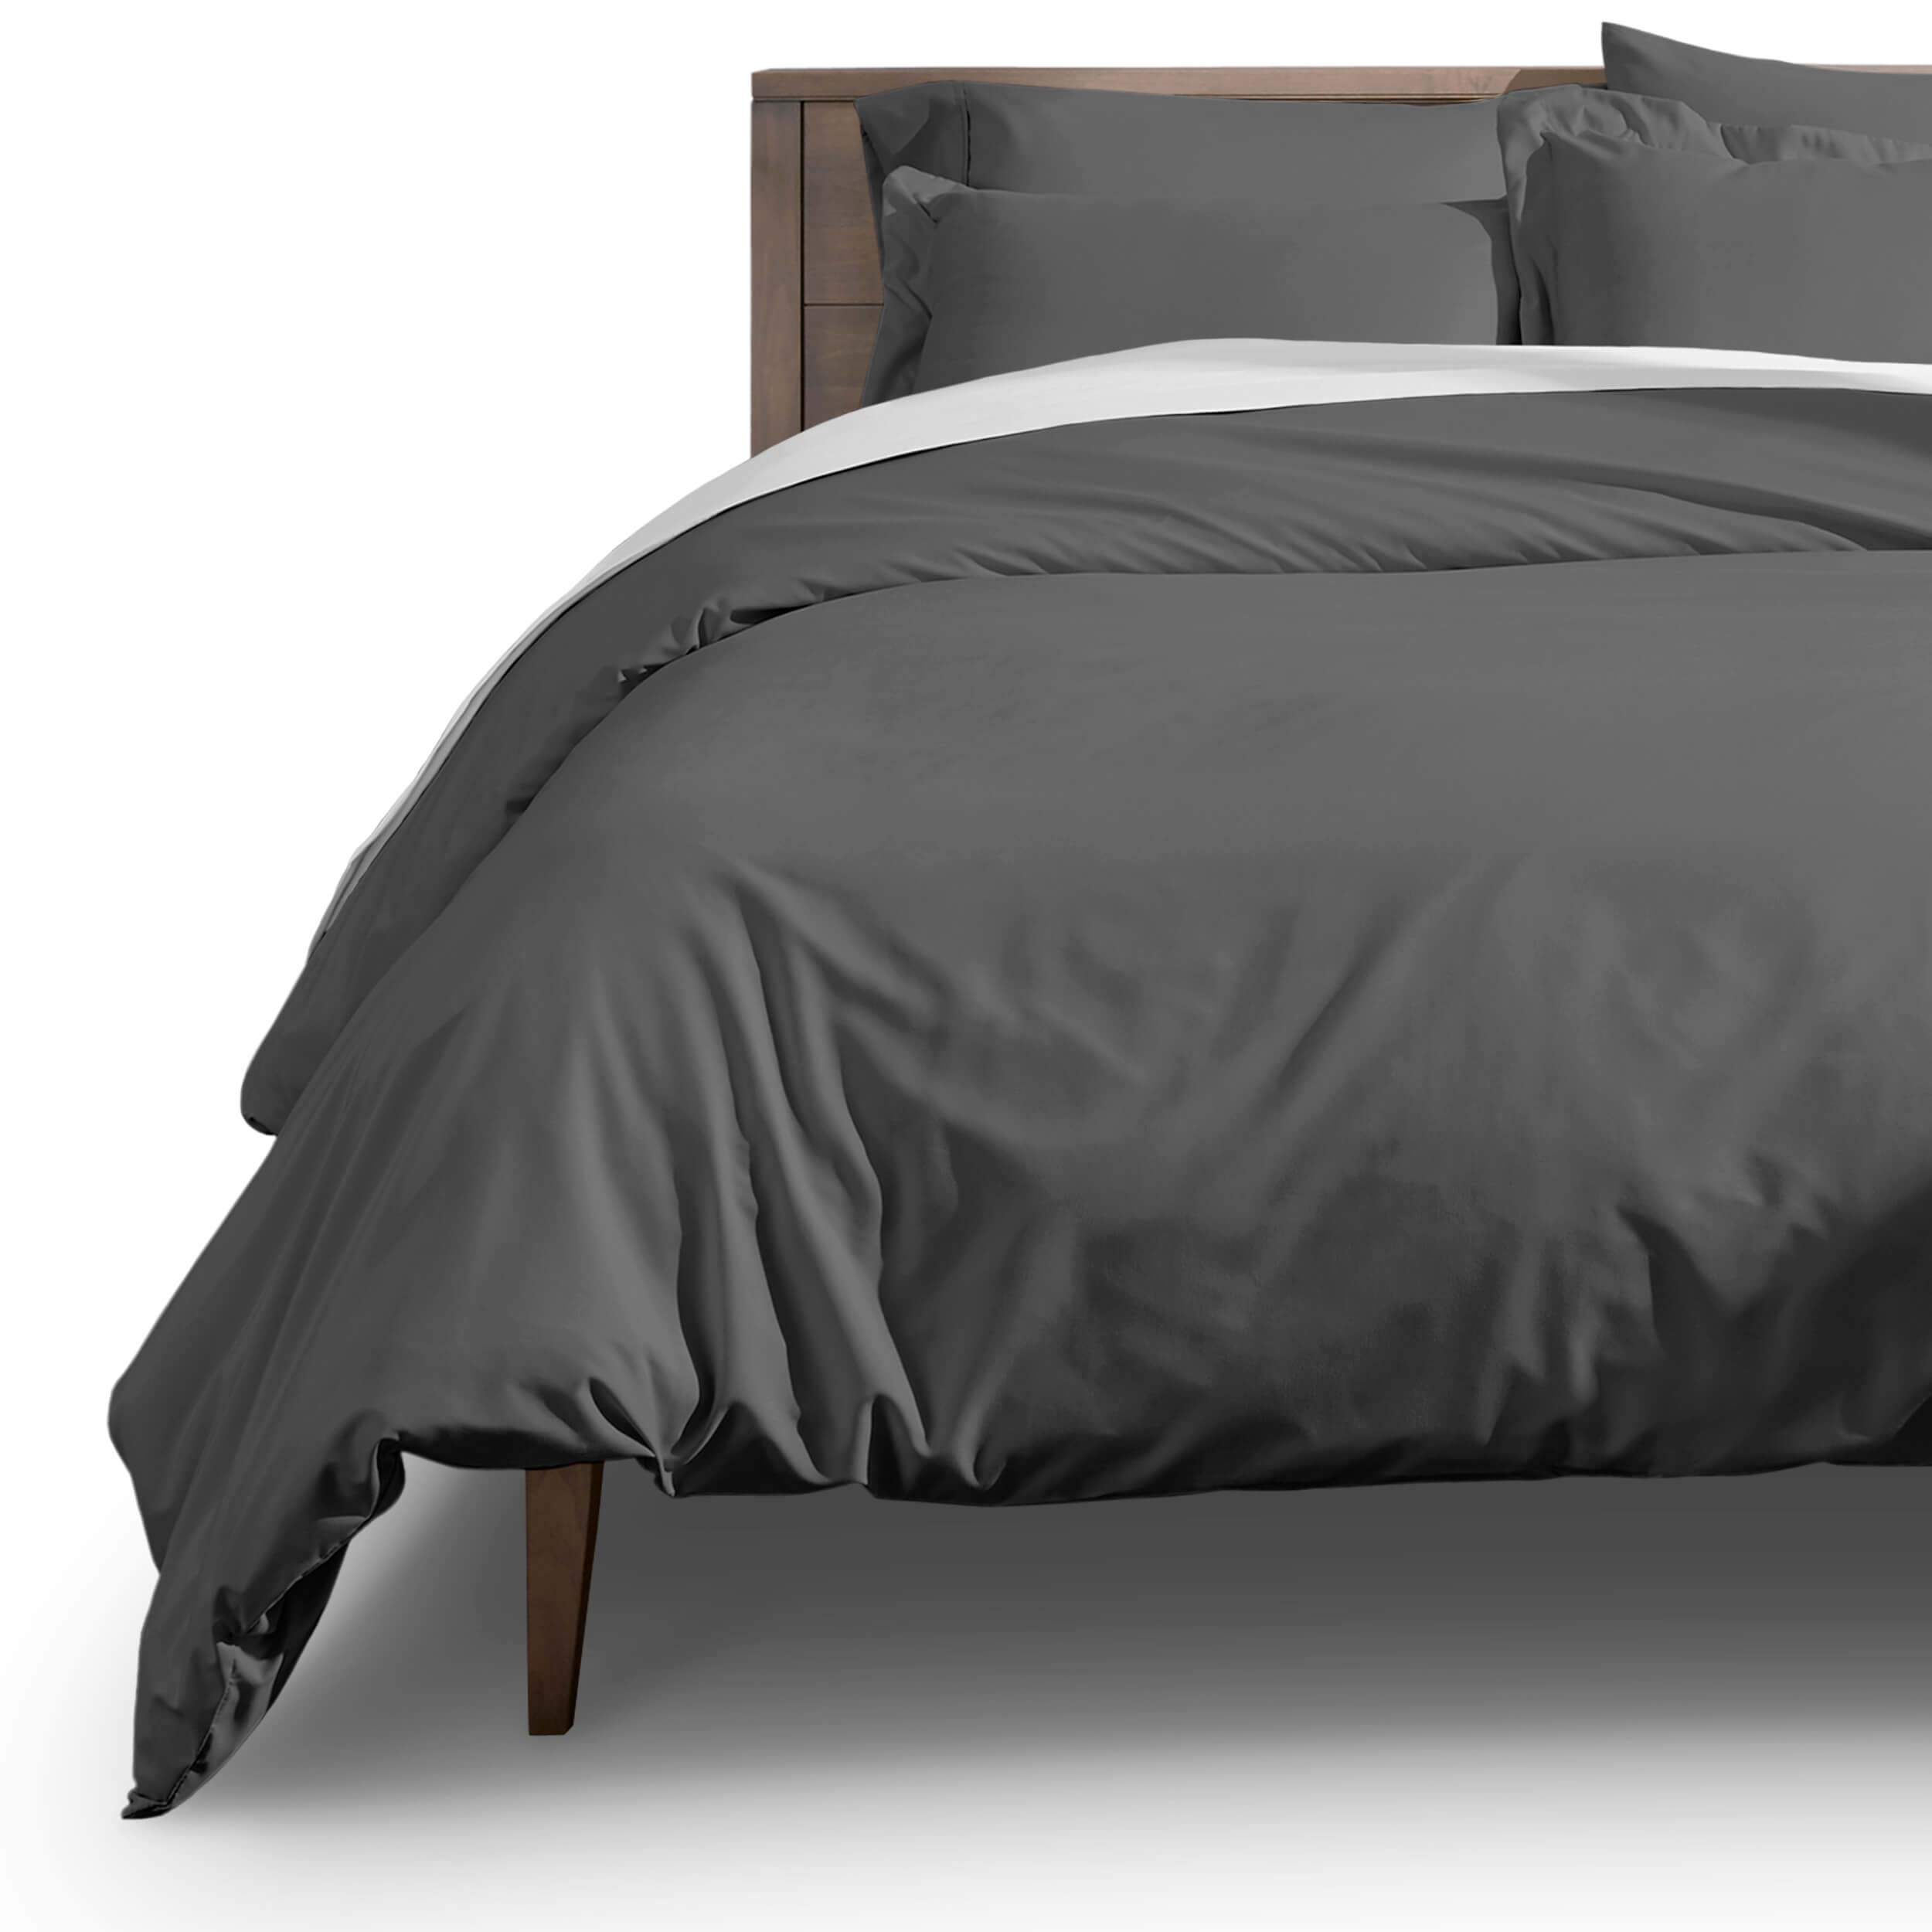 Luxury 3 Piece Duvet Cover and Sham Set - Premium 1800 Ultra-Soft Brushed Microfiber - Hypoallergenic, Easy Care, Wrinkle Resistant (Full/Queen, Grey)